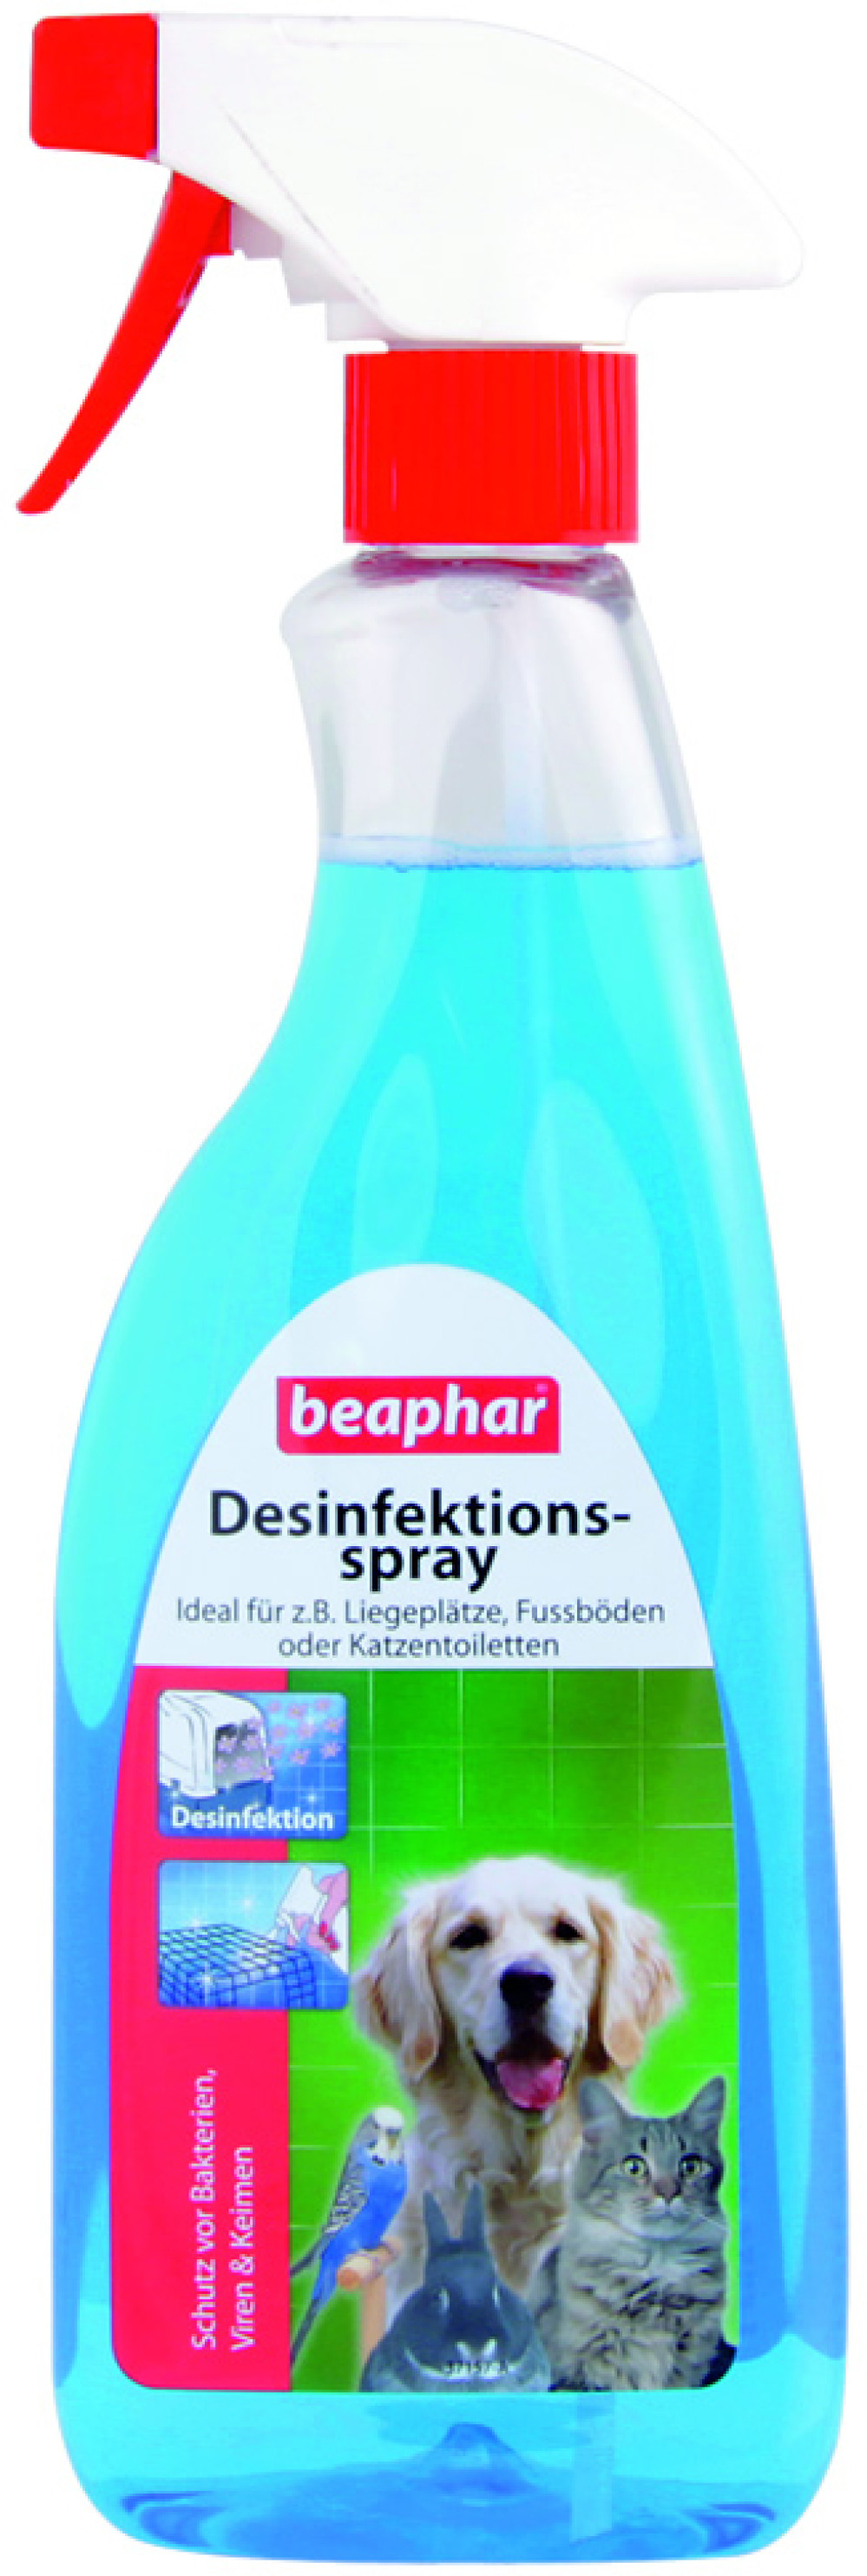 zoo/Beaphar_Desinfektions_Spray